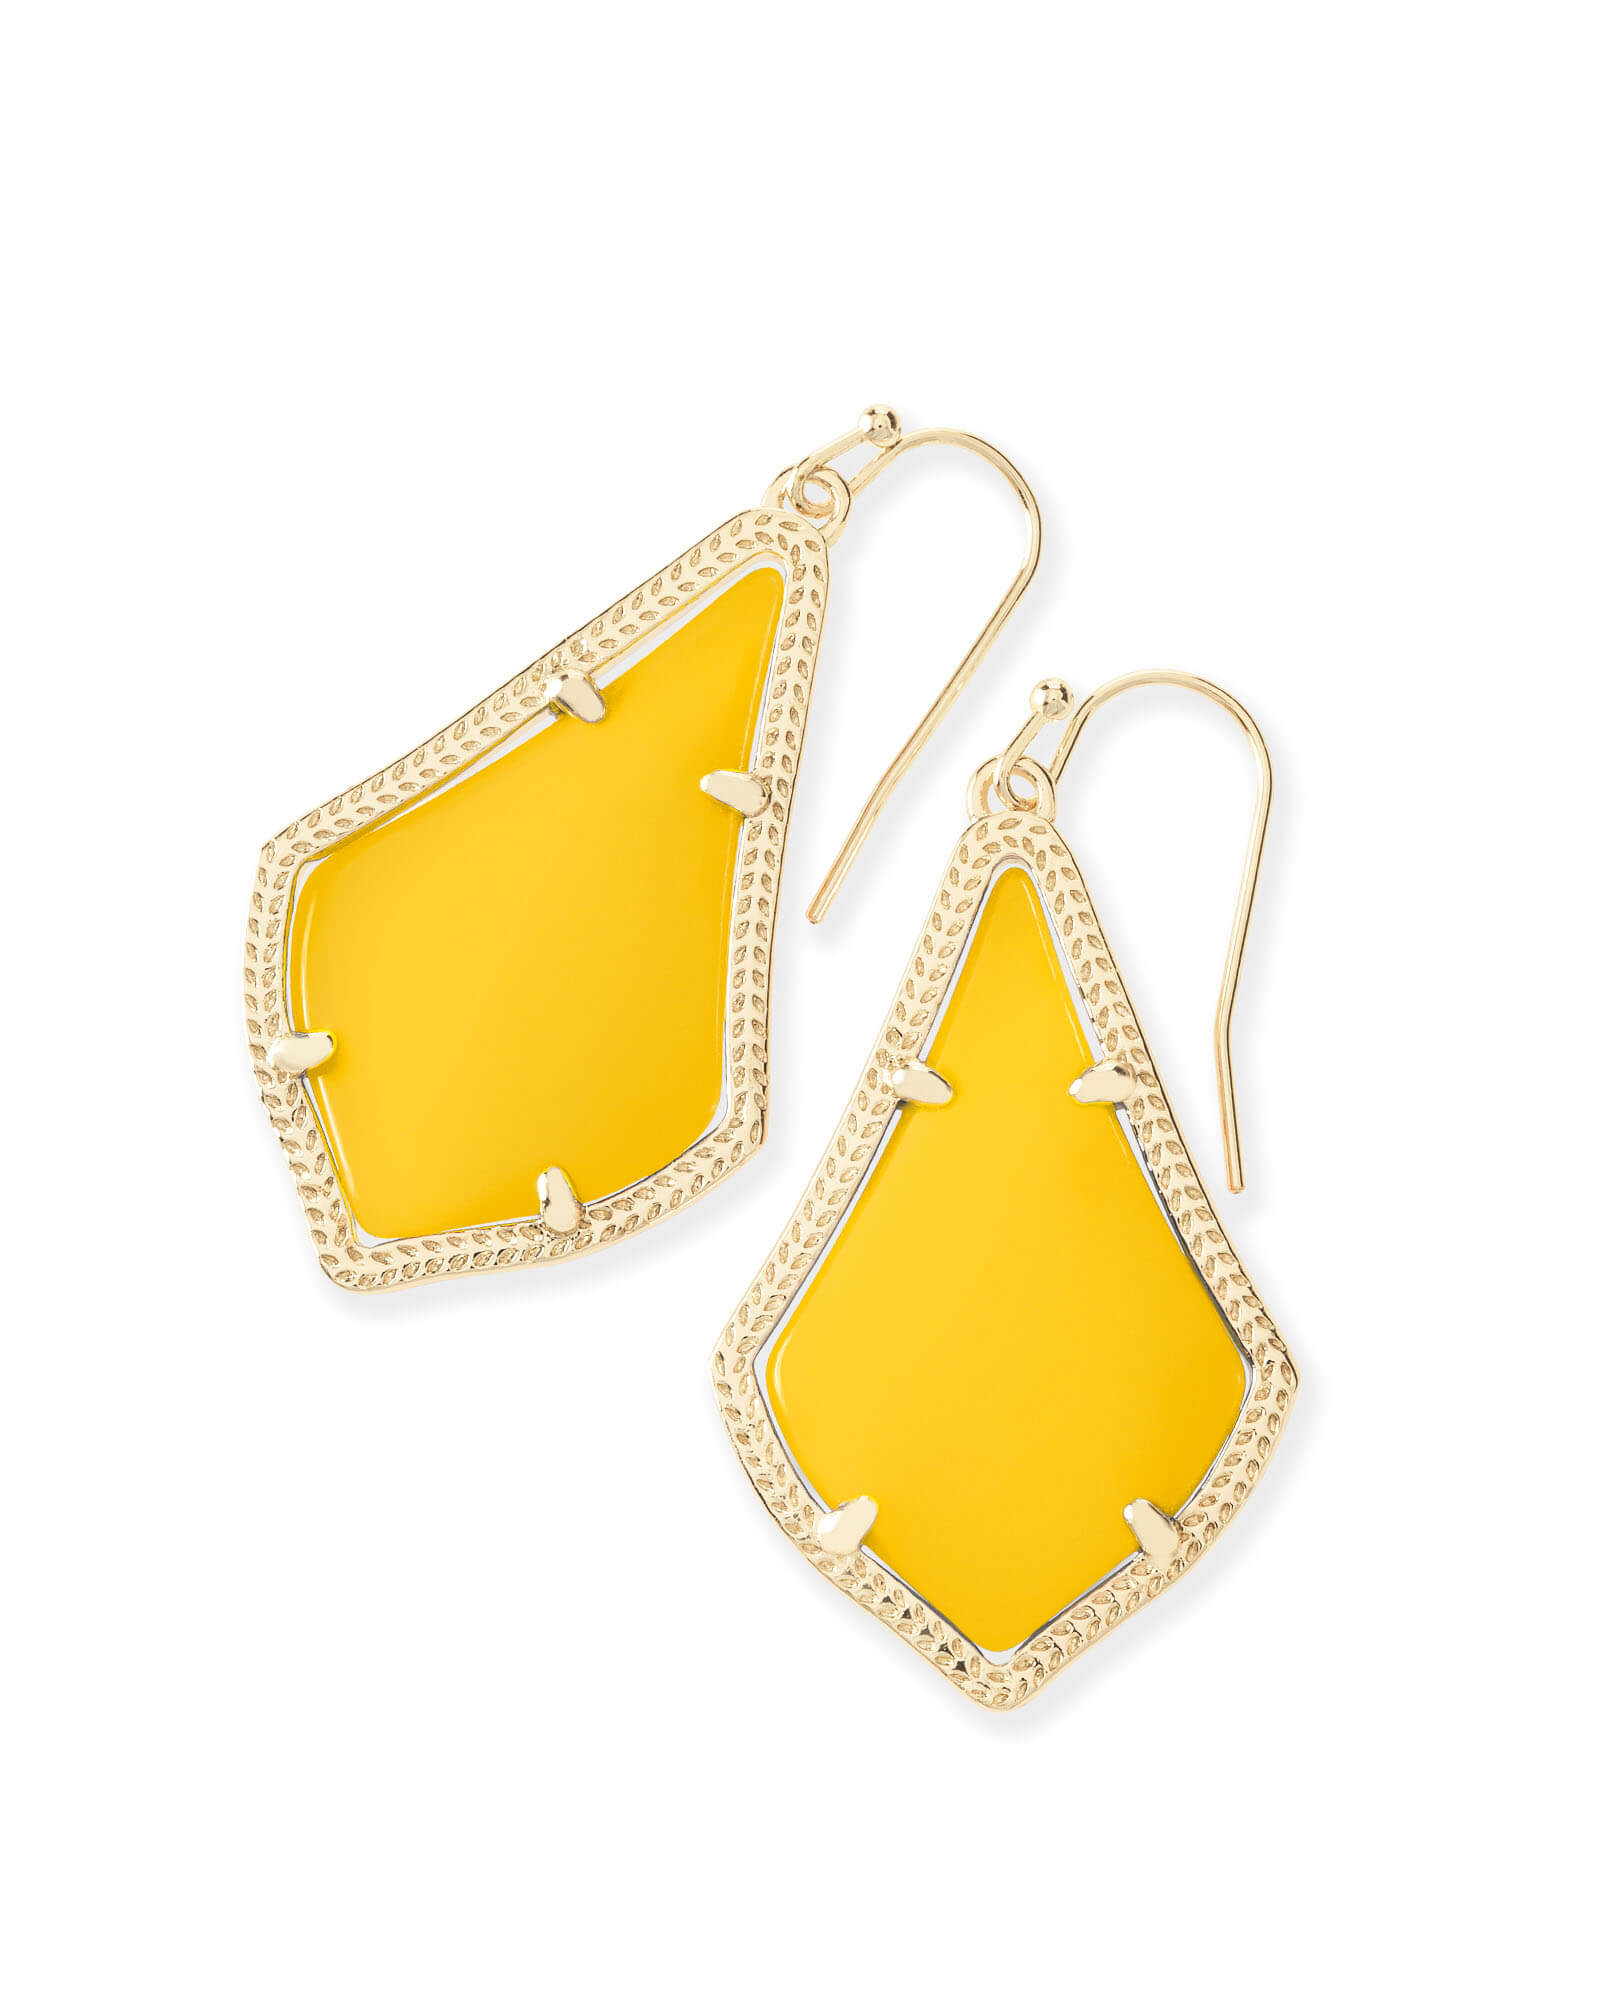 Alex Earrings in Yellow